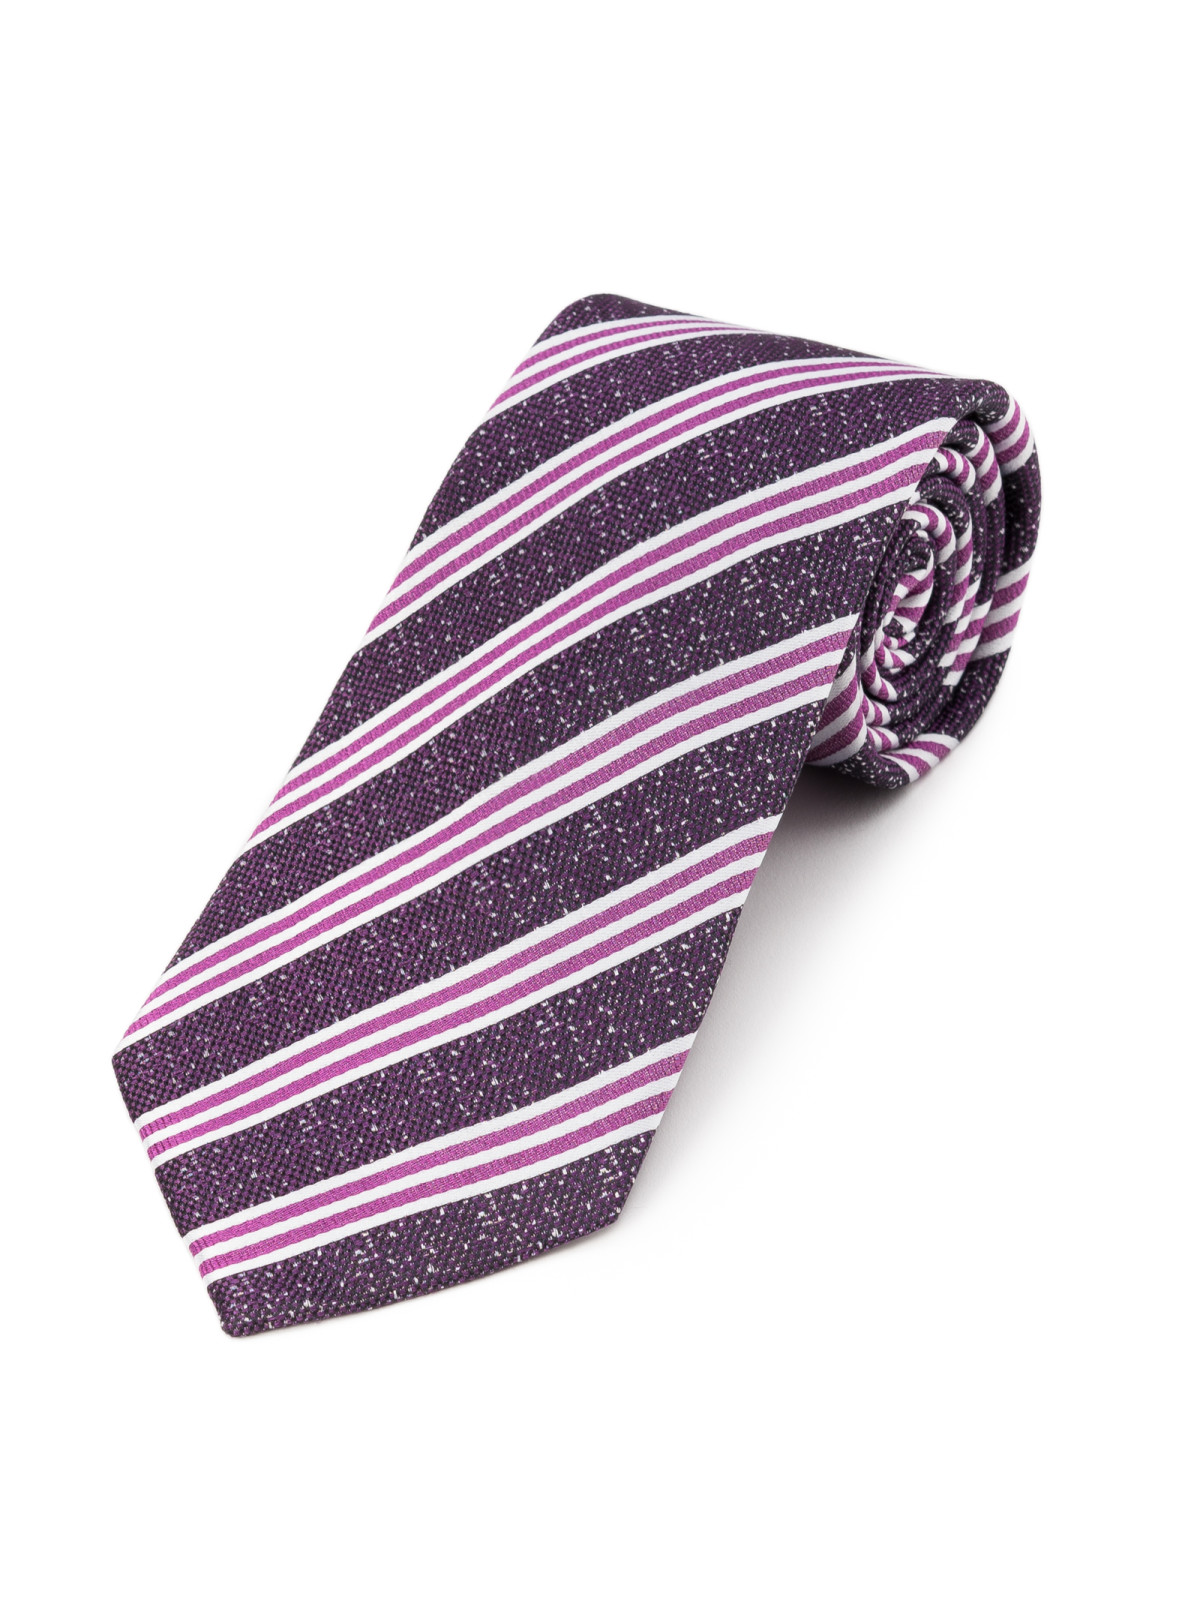 Regency Striped Purple and Plum Tie